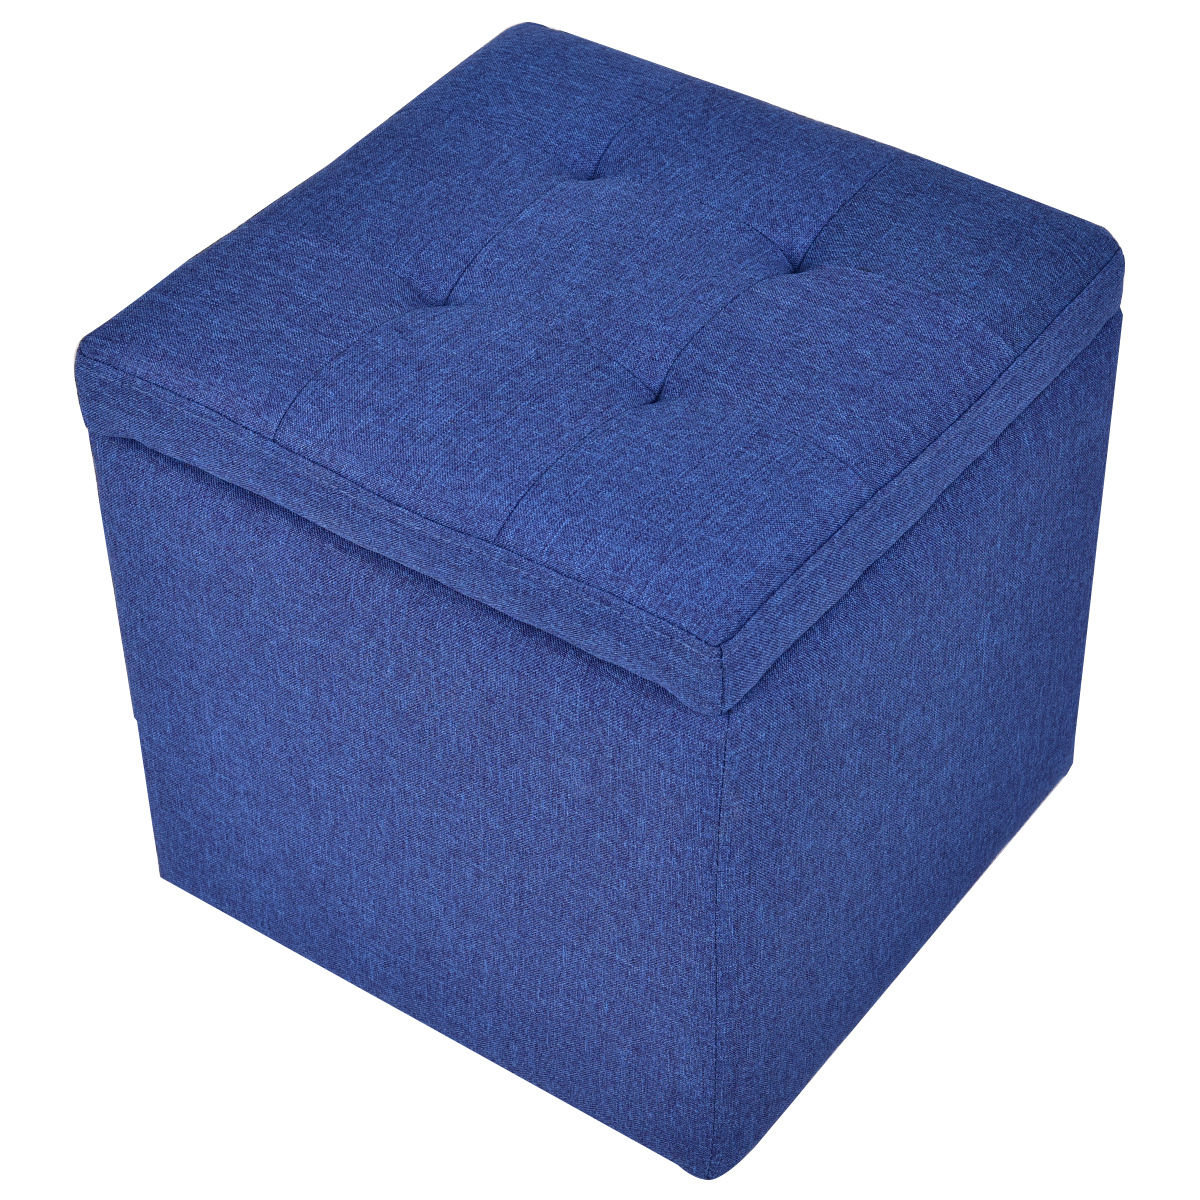 Gymax Blue Storage Ottoman Square Seat Foot Stool Living Room Chair Cube